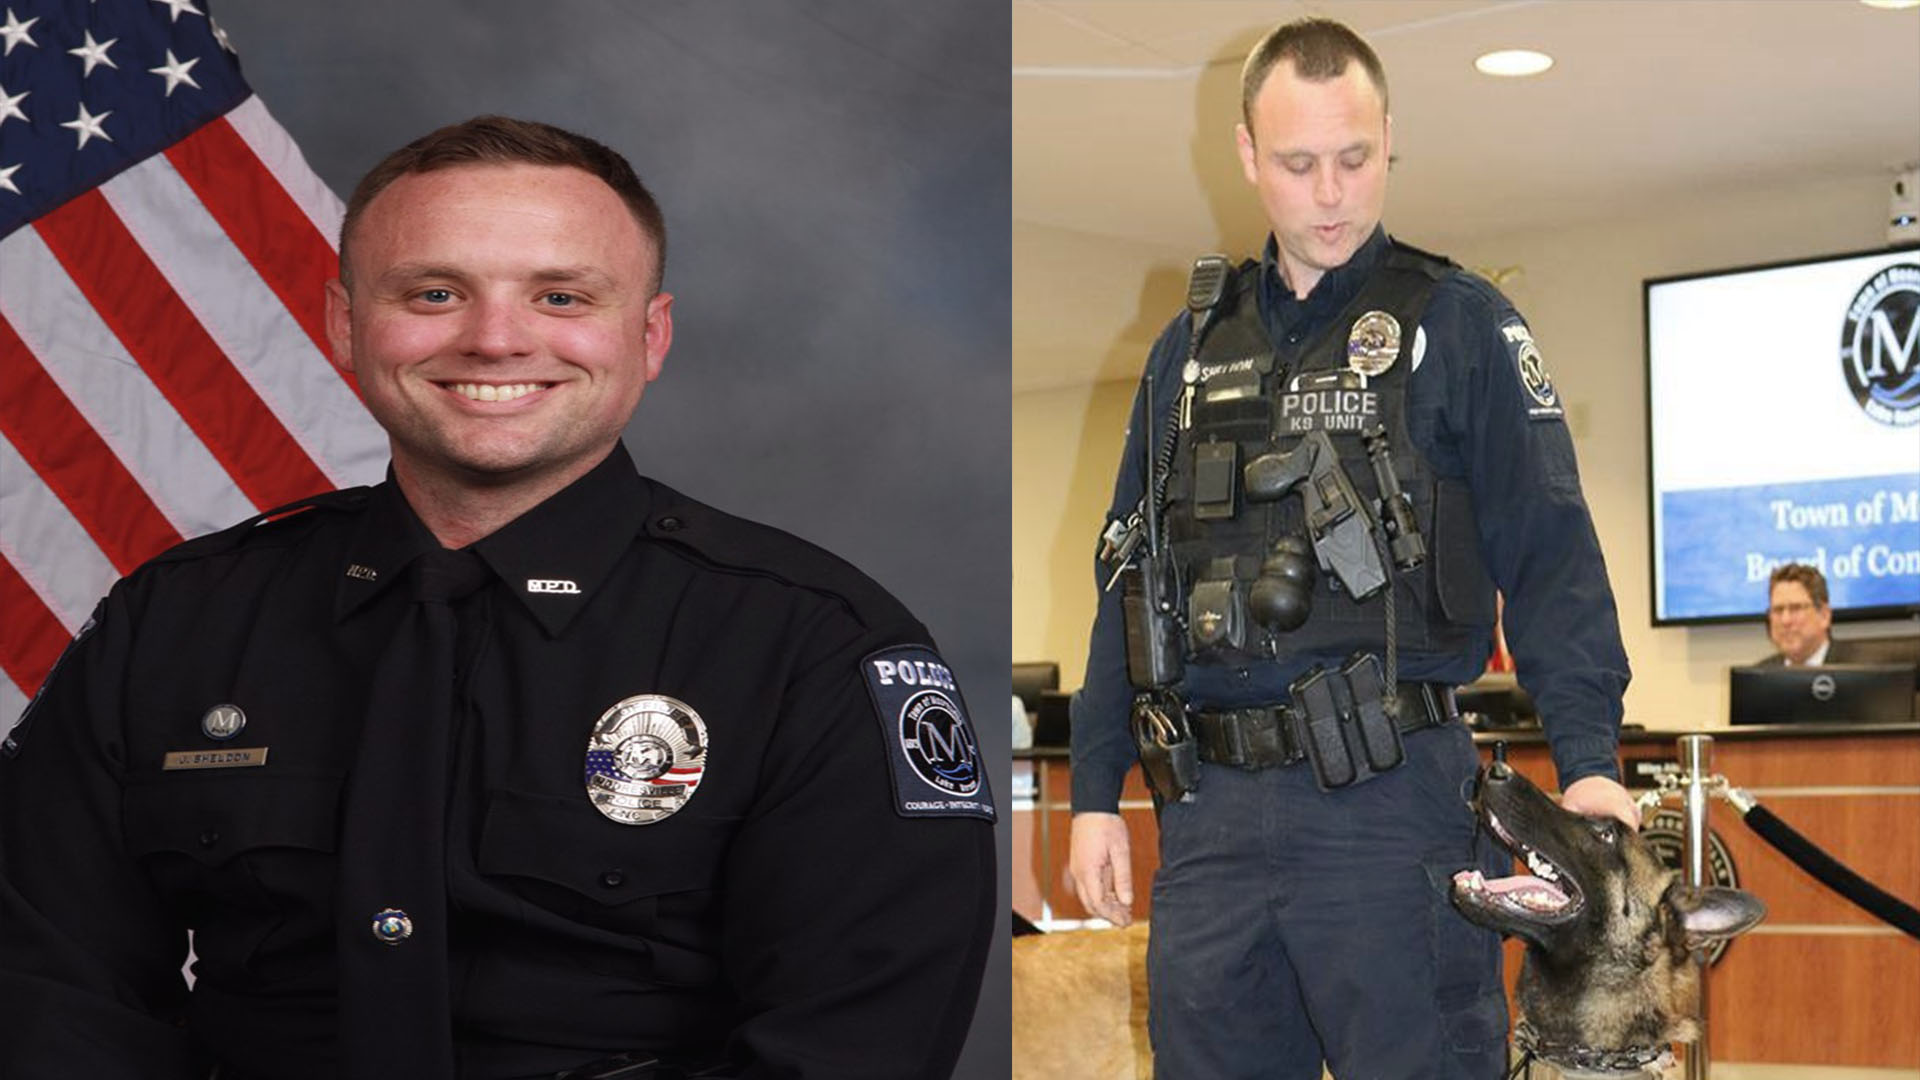 End of watch Jordan Harris Sheldon_1557057792212.jpg.jpg